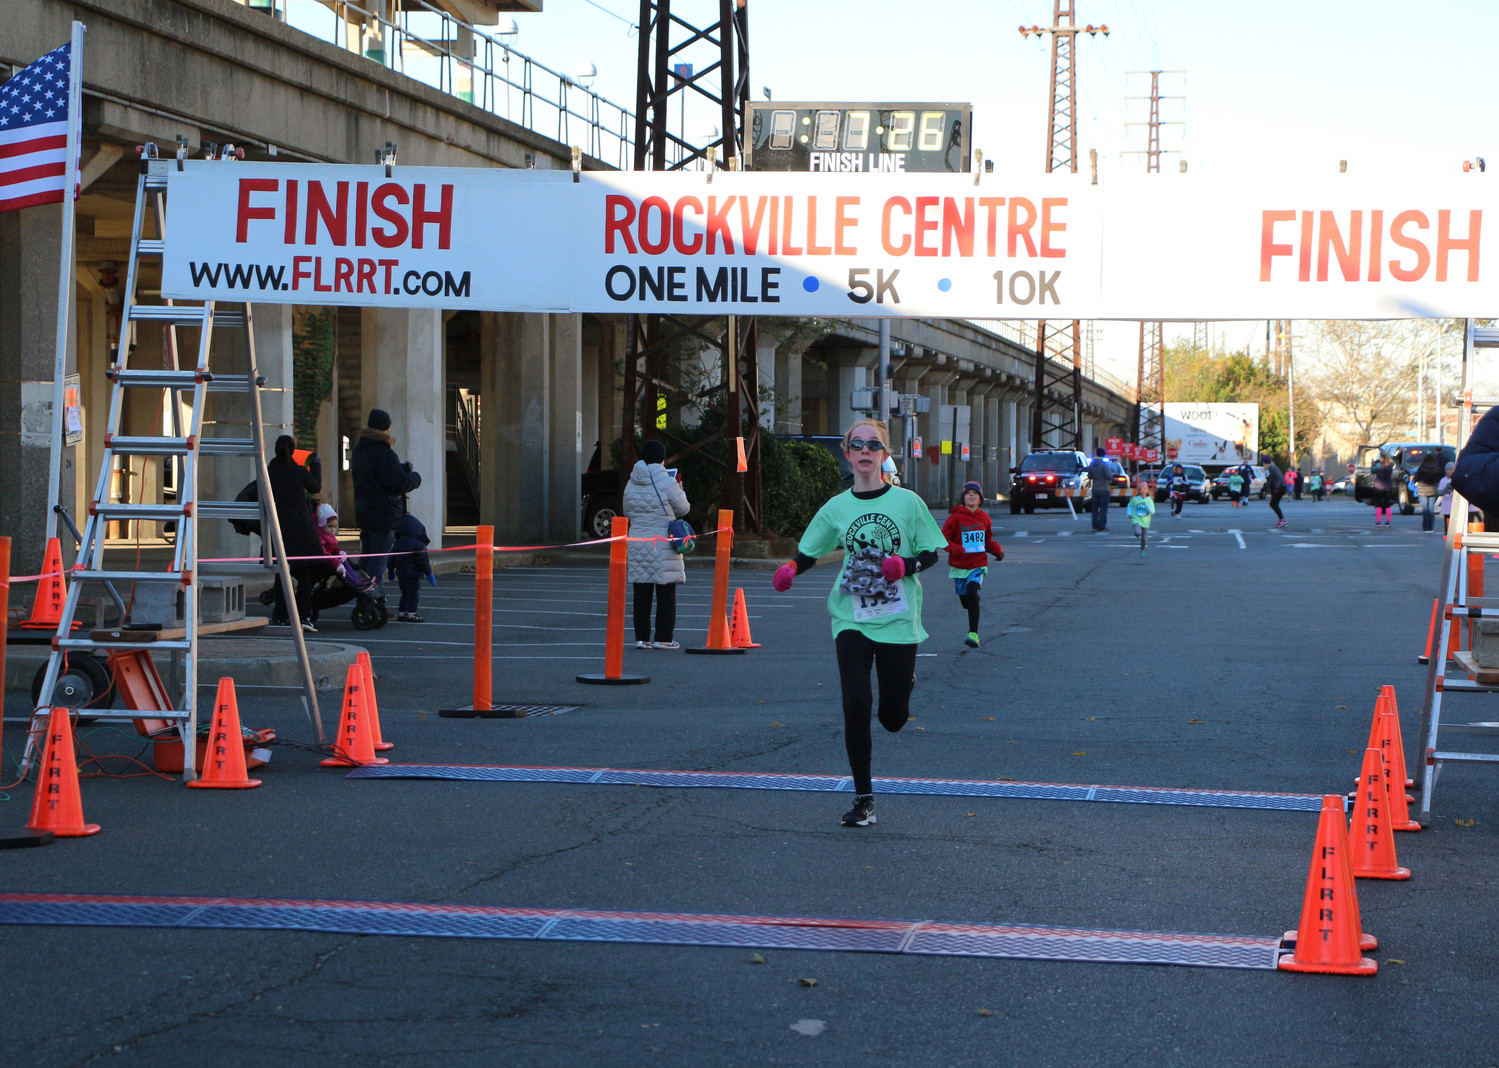 The first runner to finish the one-mile run was 13-year-old Kathy Srobhan, at 7 minutes and 26 seconds.